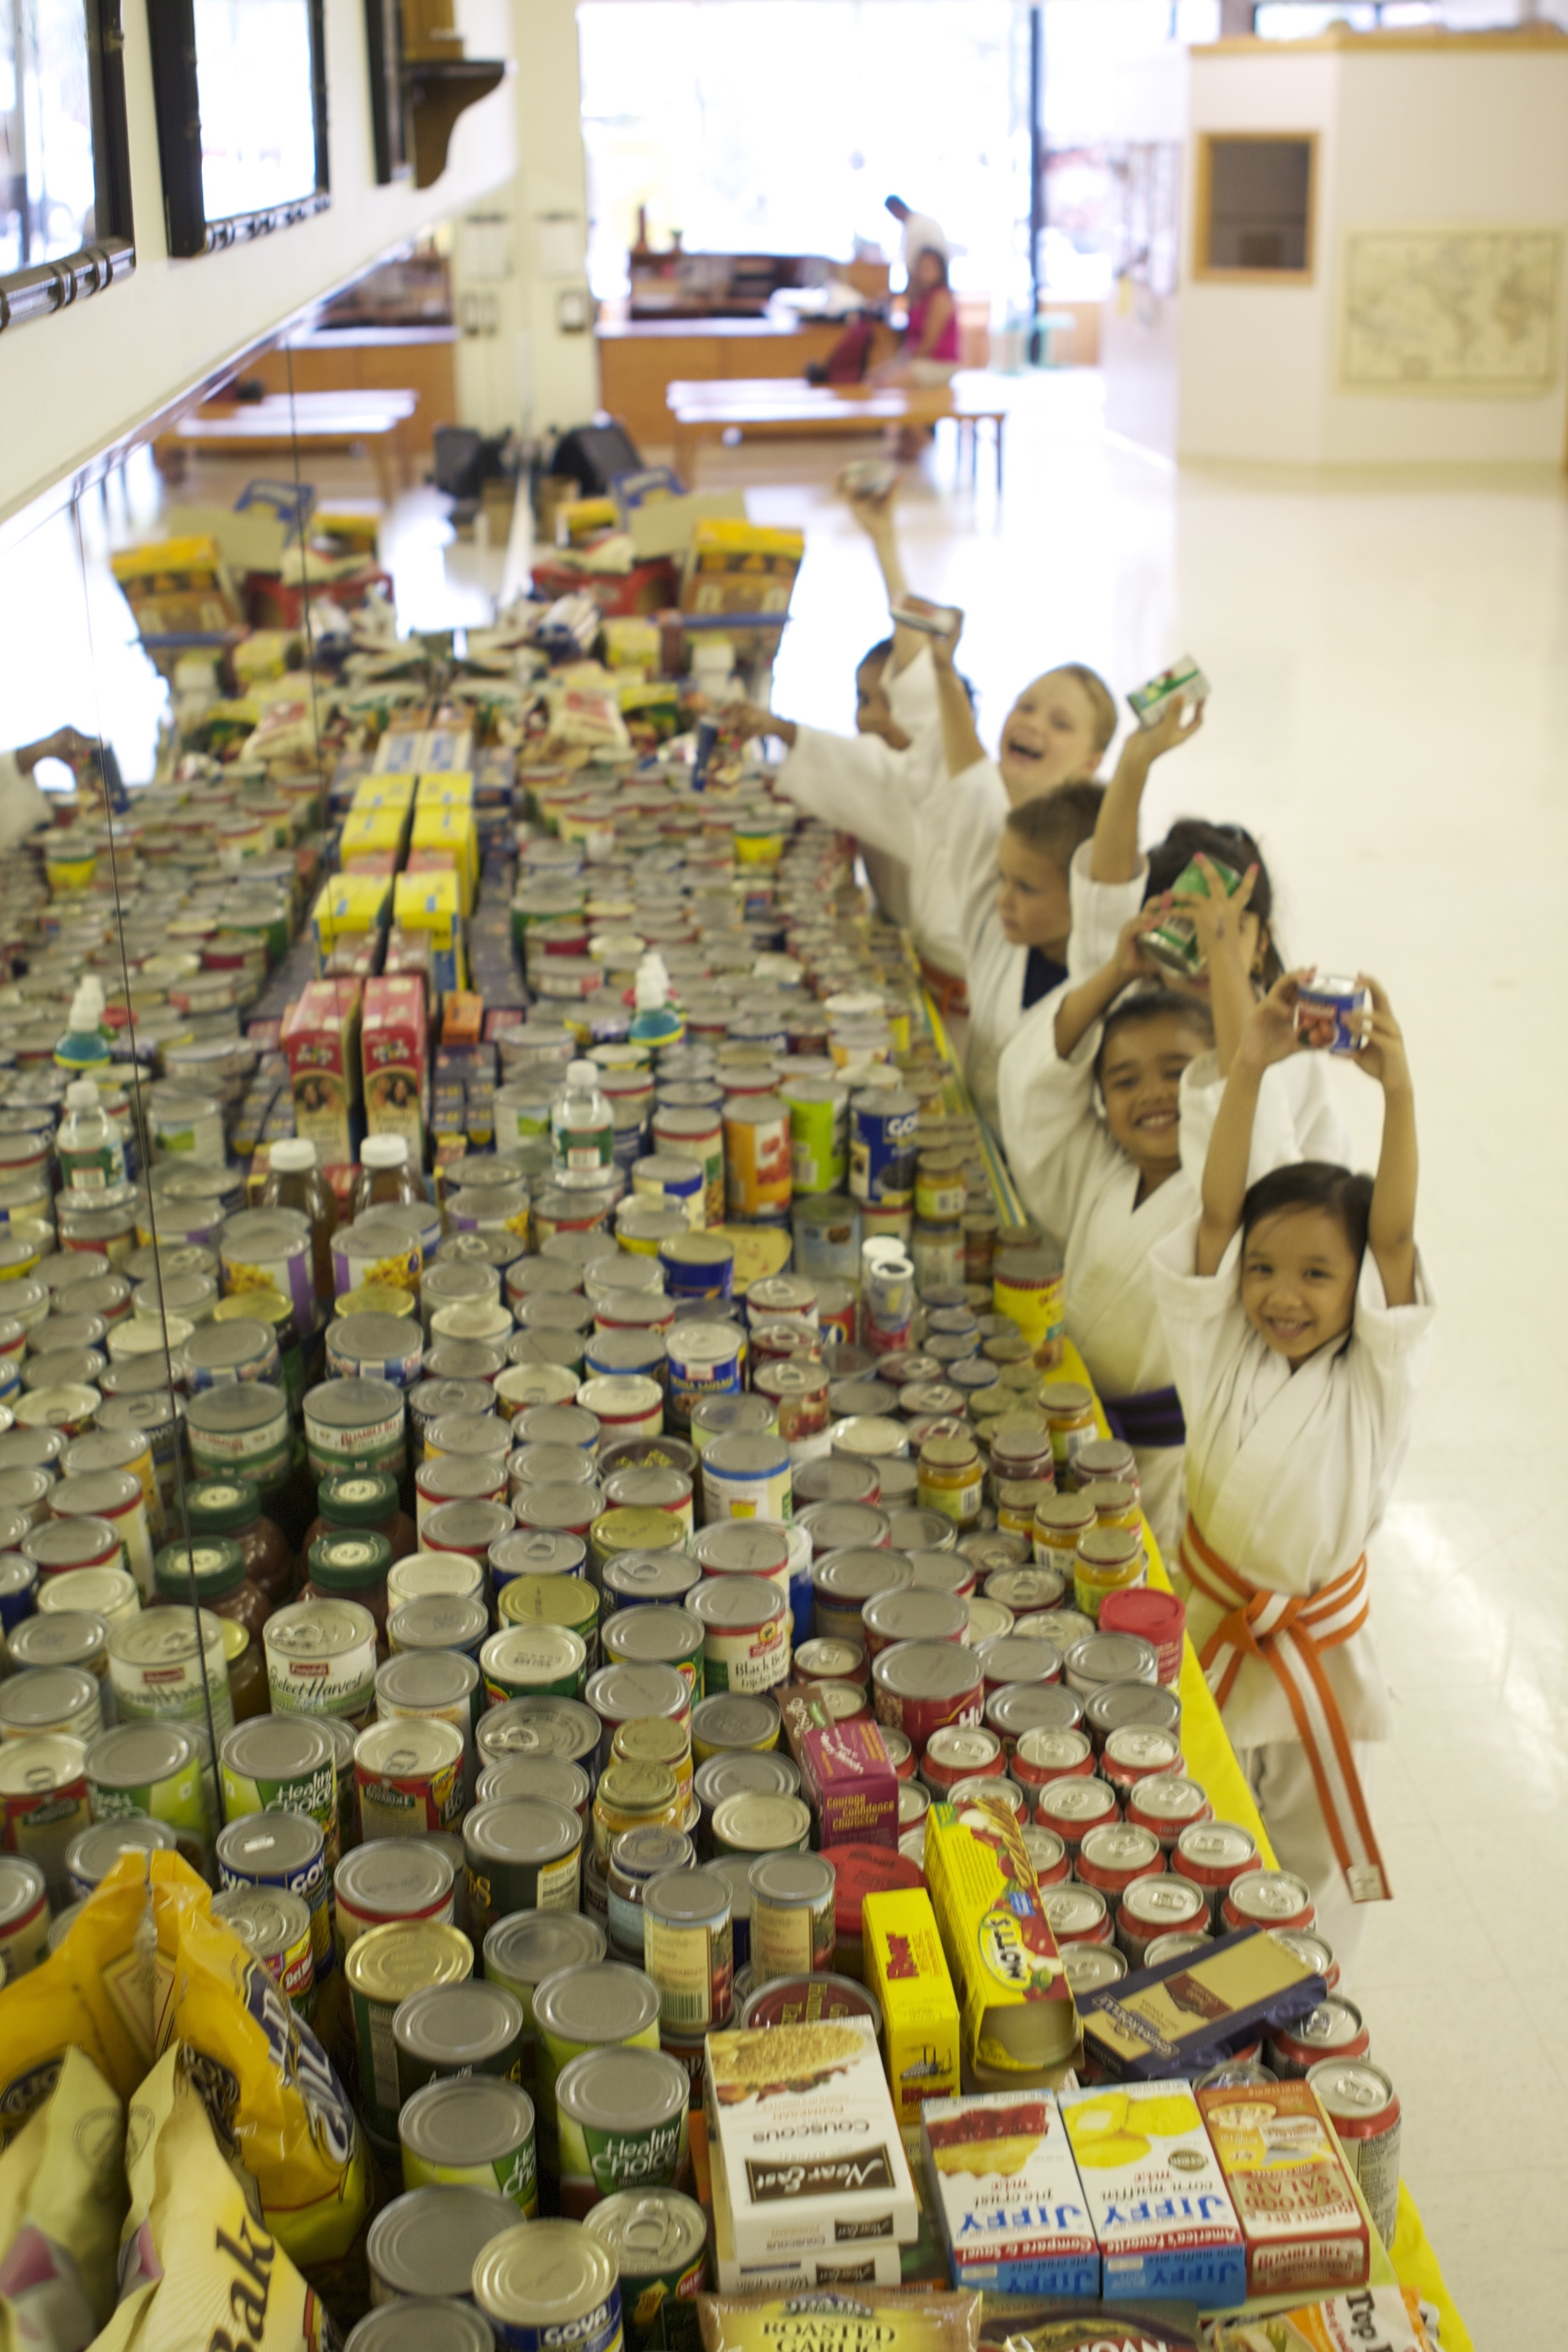 thedojo-food-drive-martial-arts-karate-kids-doing-community-service-in-rutherford-nj_14690988843_o.jpg